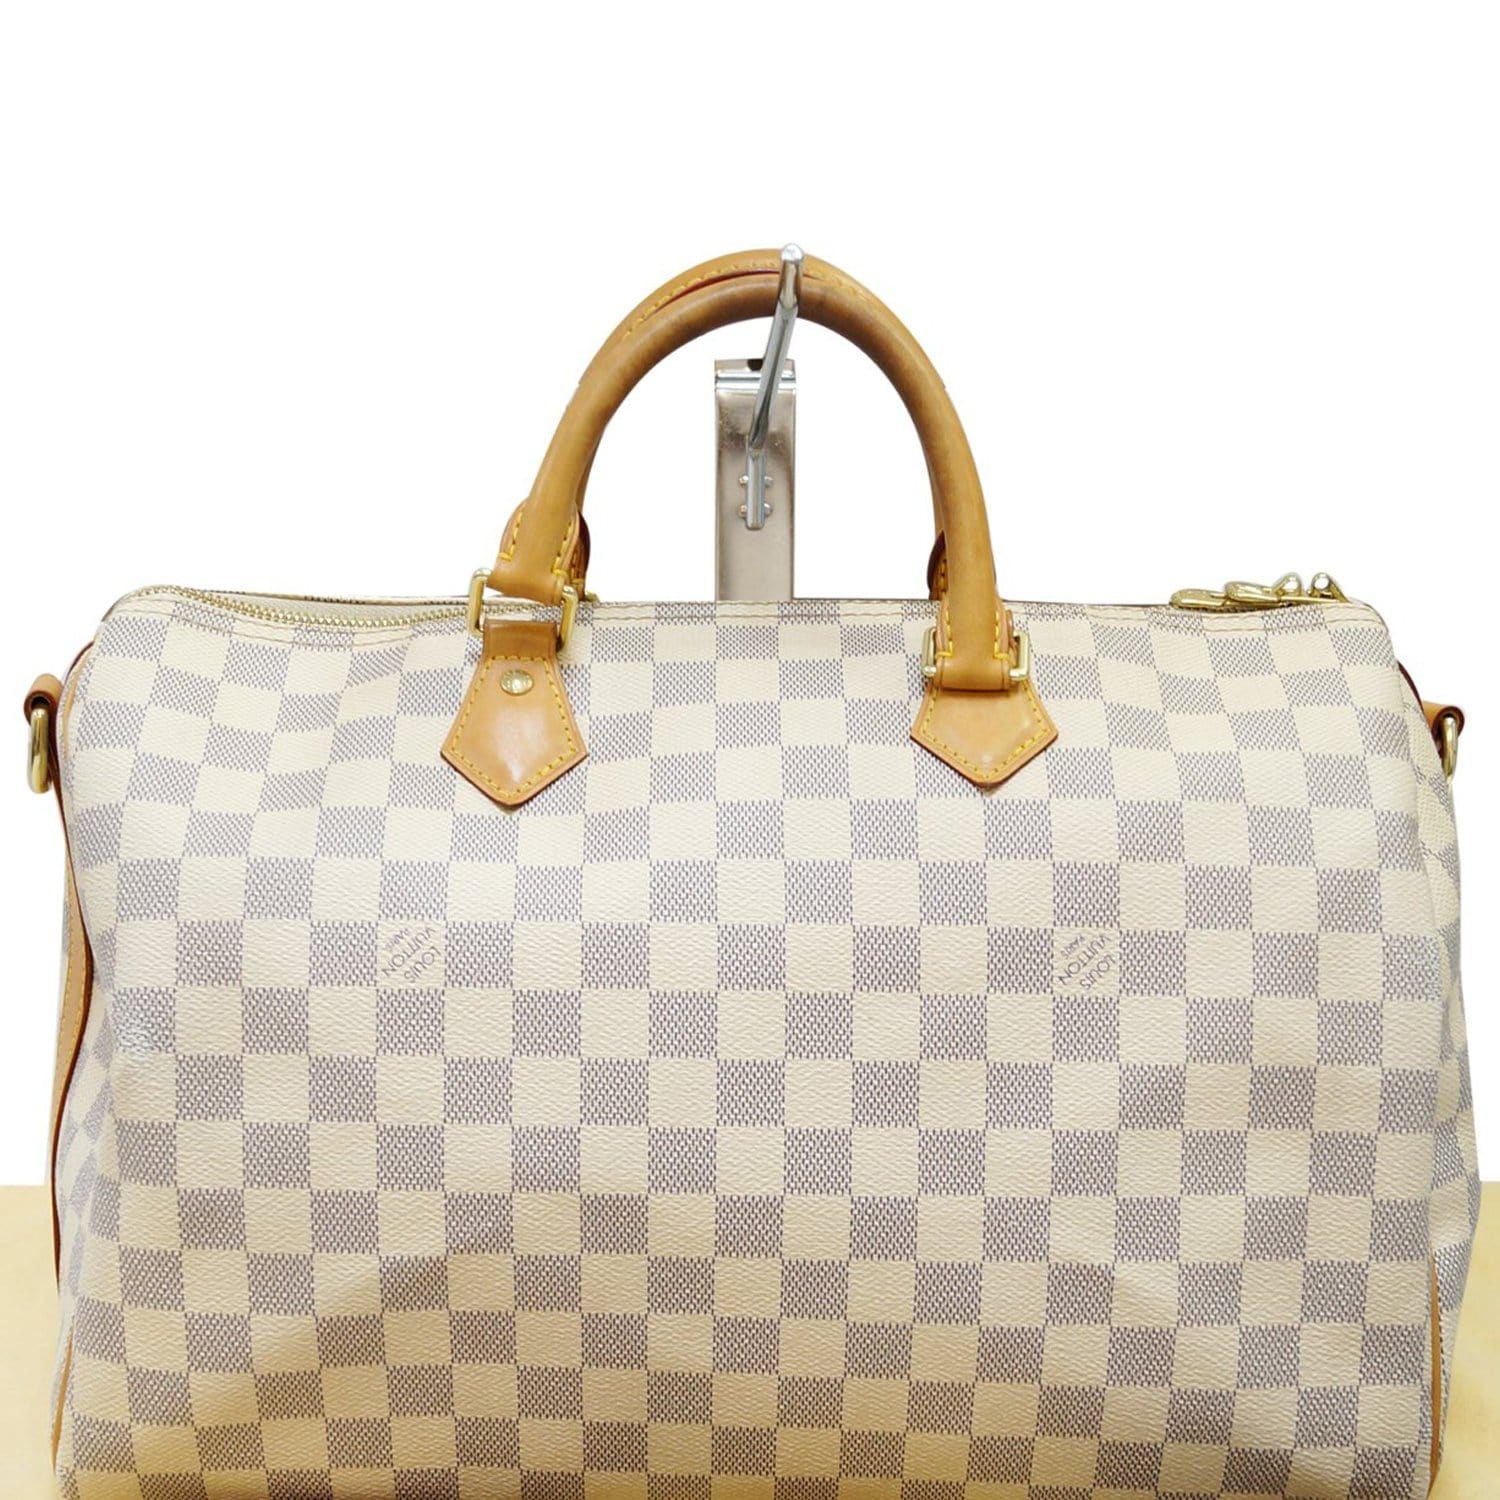 bb52070ecd2 LOUIS VUITTON Speedy 35 Damier Azur Bandouliere Shoulder Bag - 20% Off